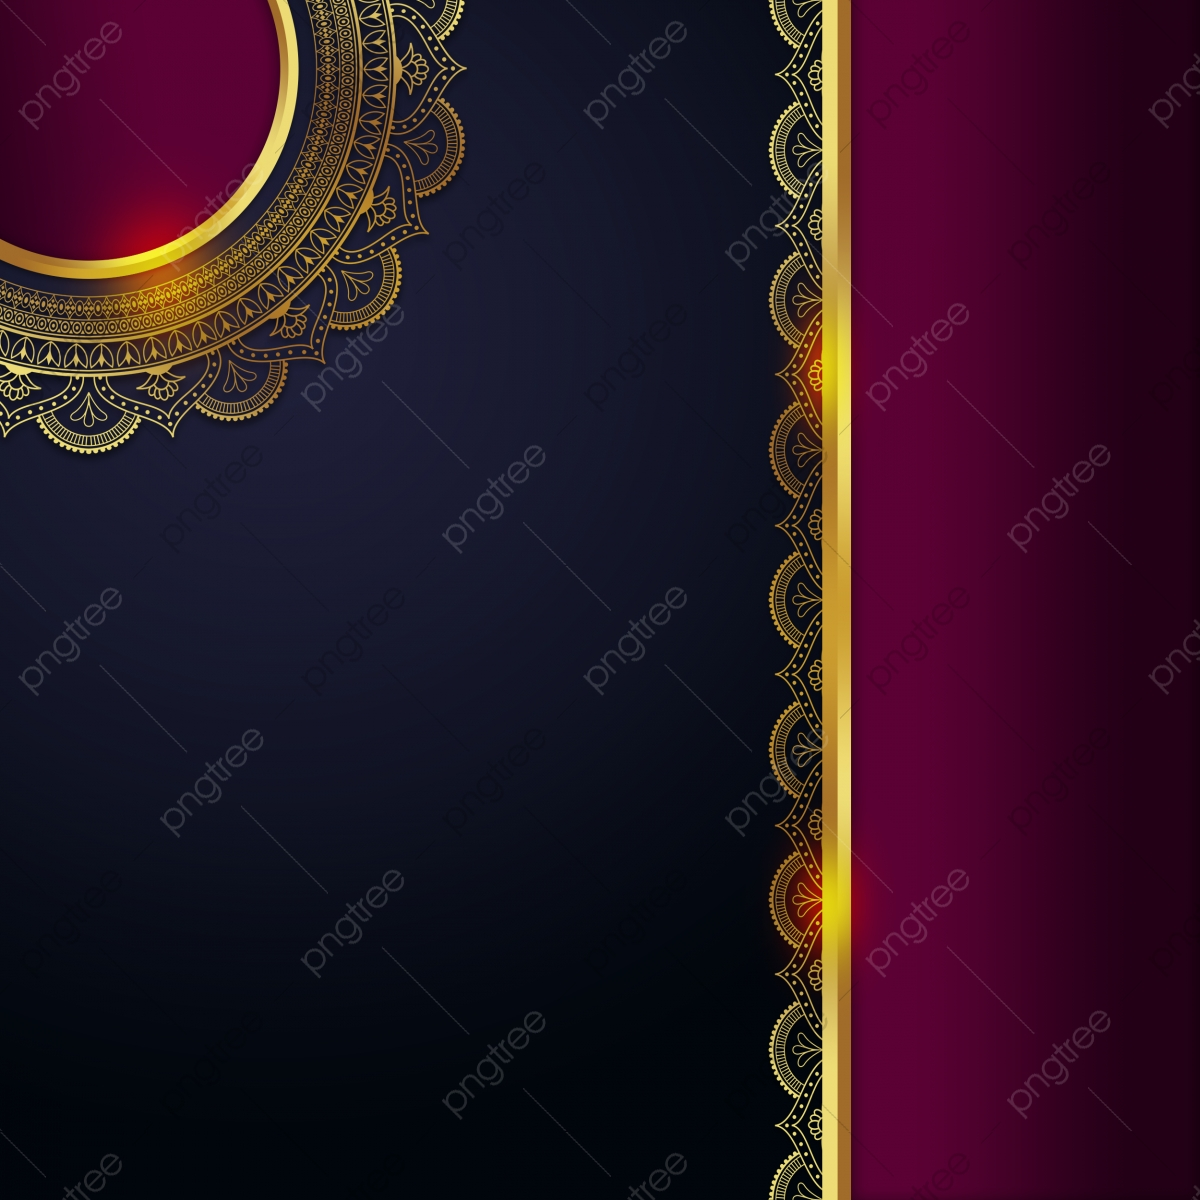 Abstract Mandala Vector Floral Background Royal Wedding Invitation Card Mandala Floral Background Background Image For Free Download